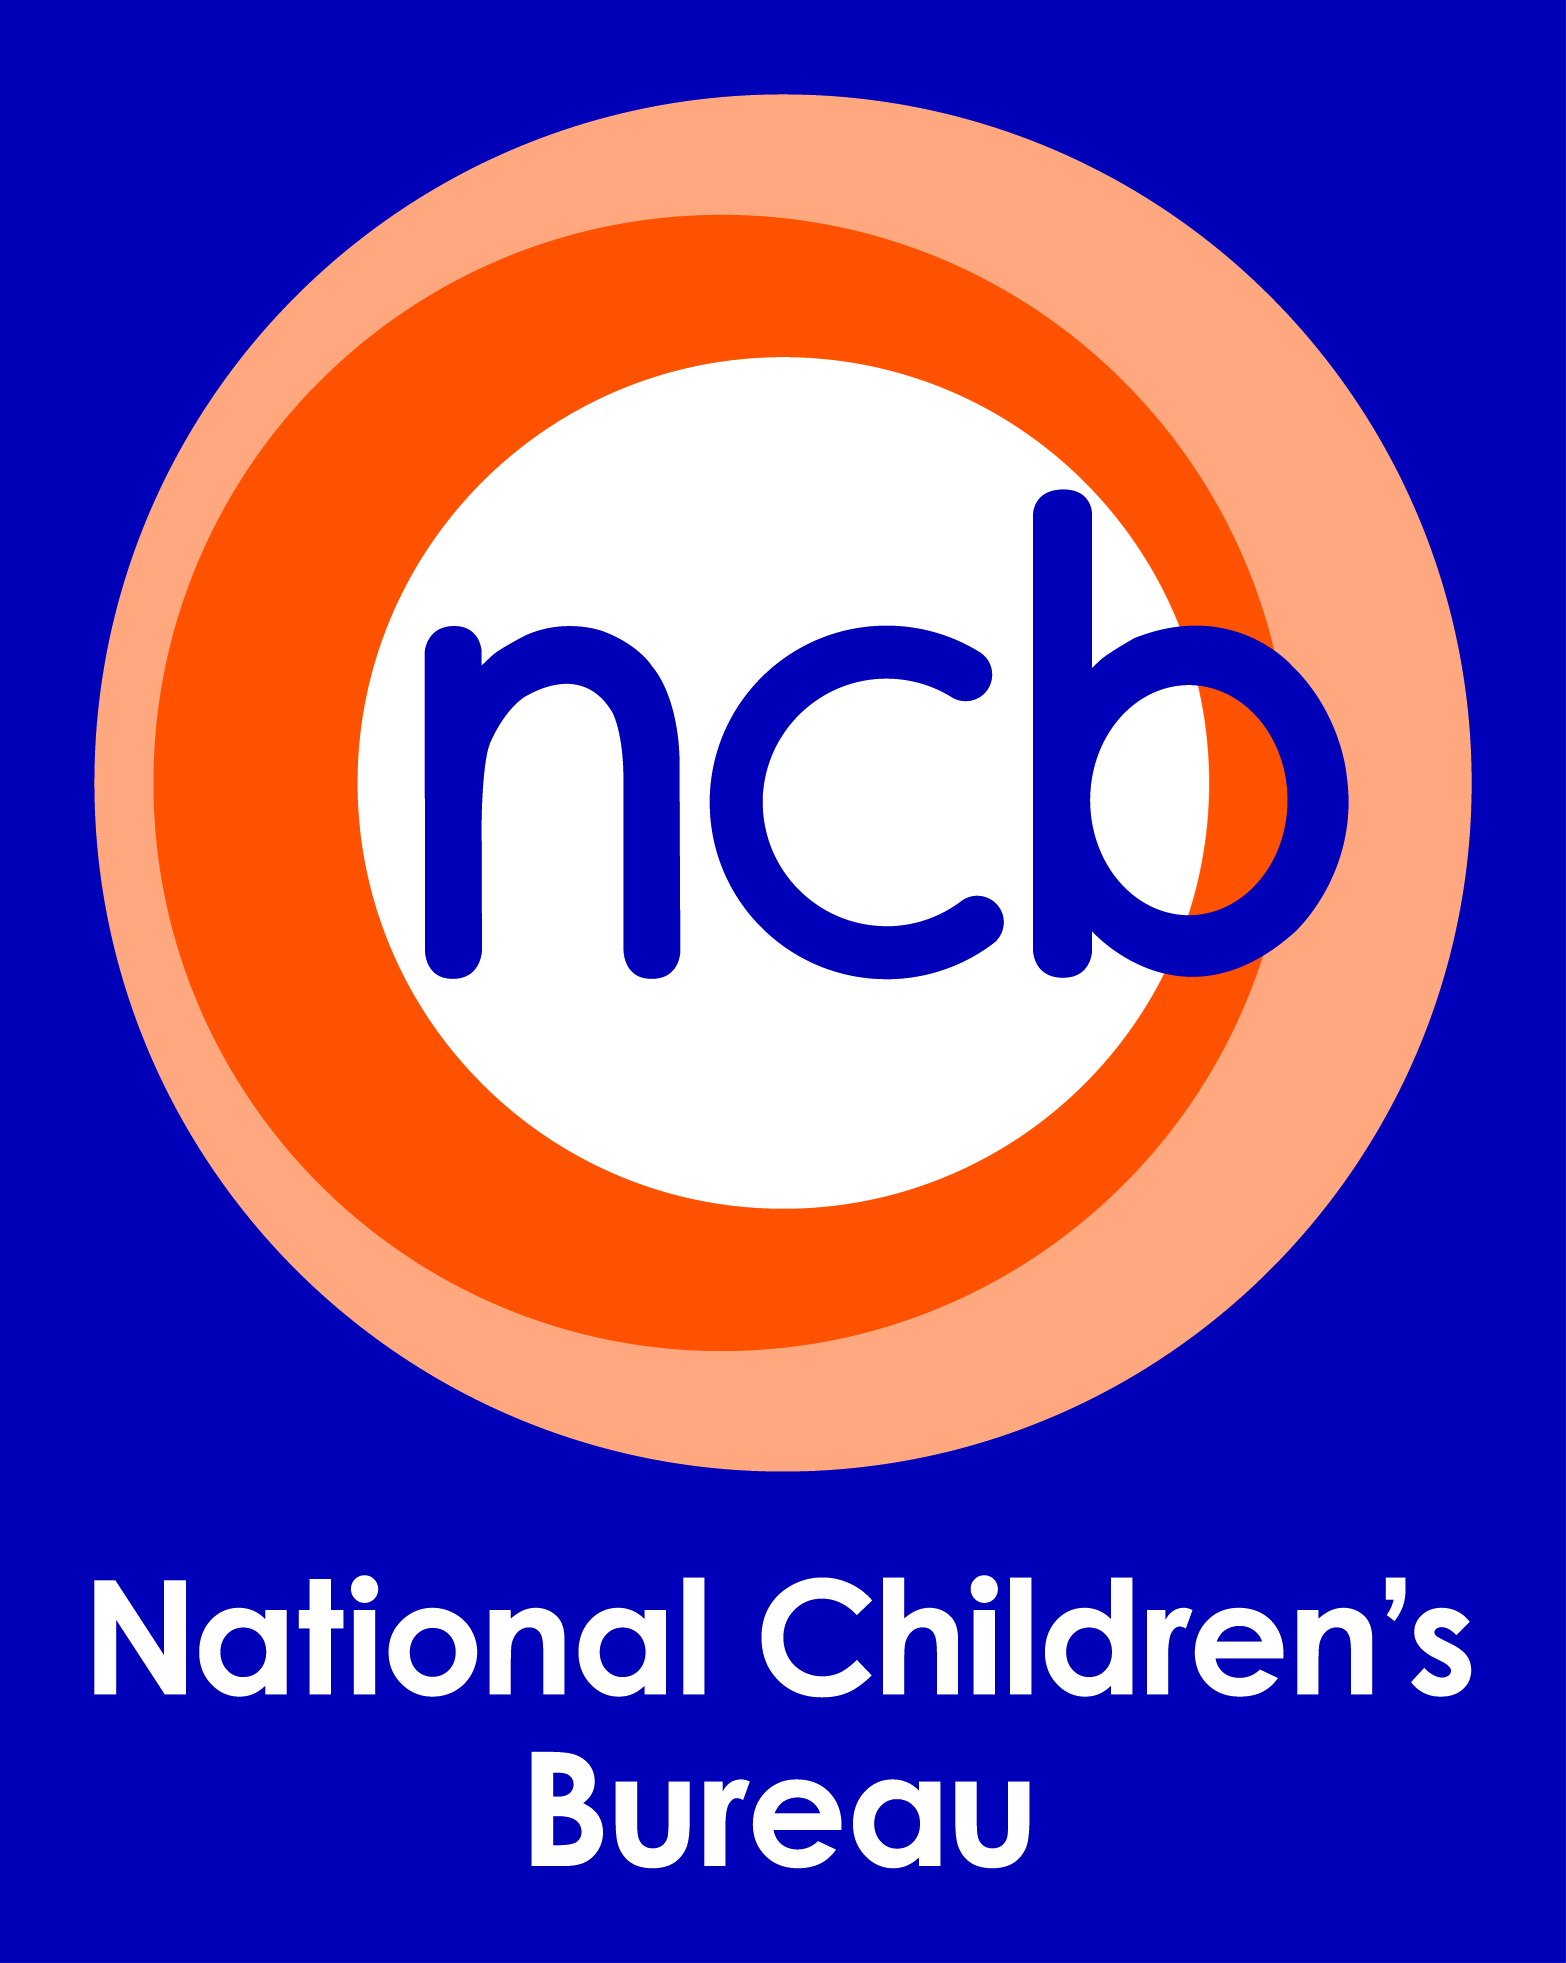 National Children's Beaurau